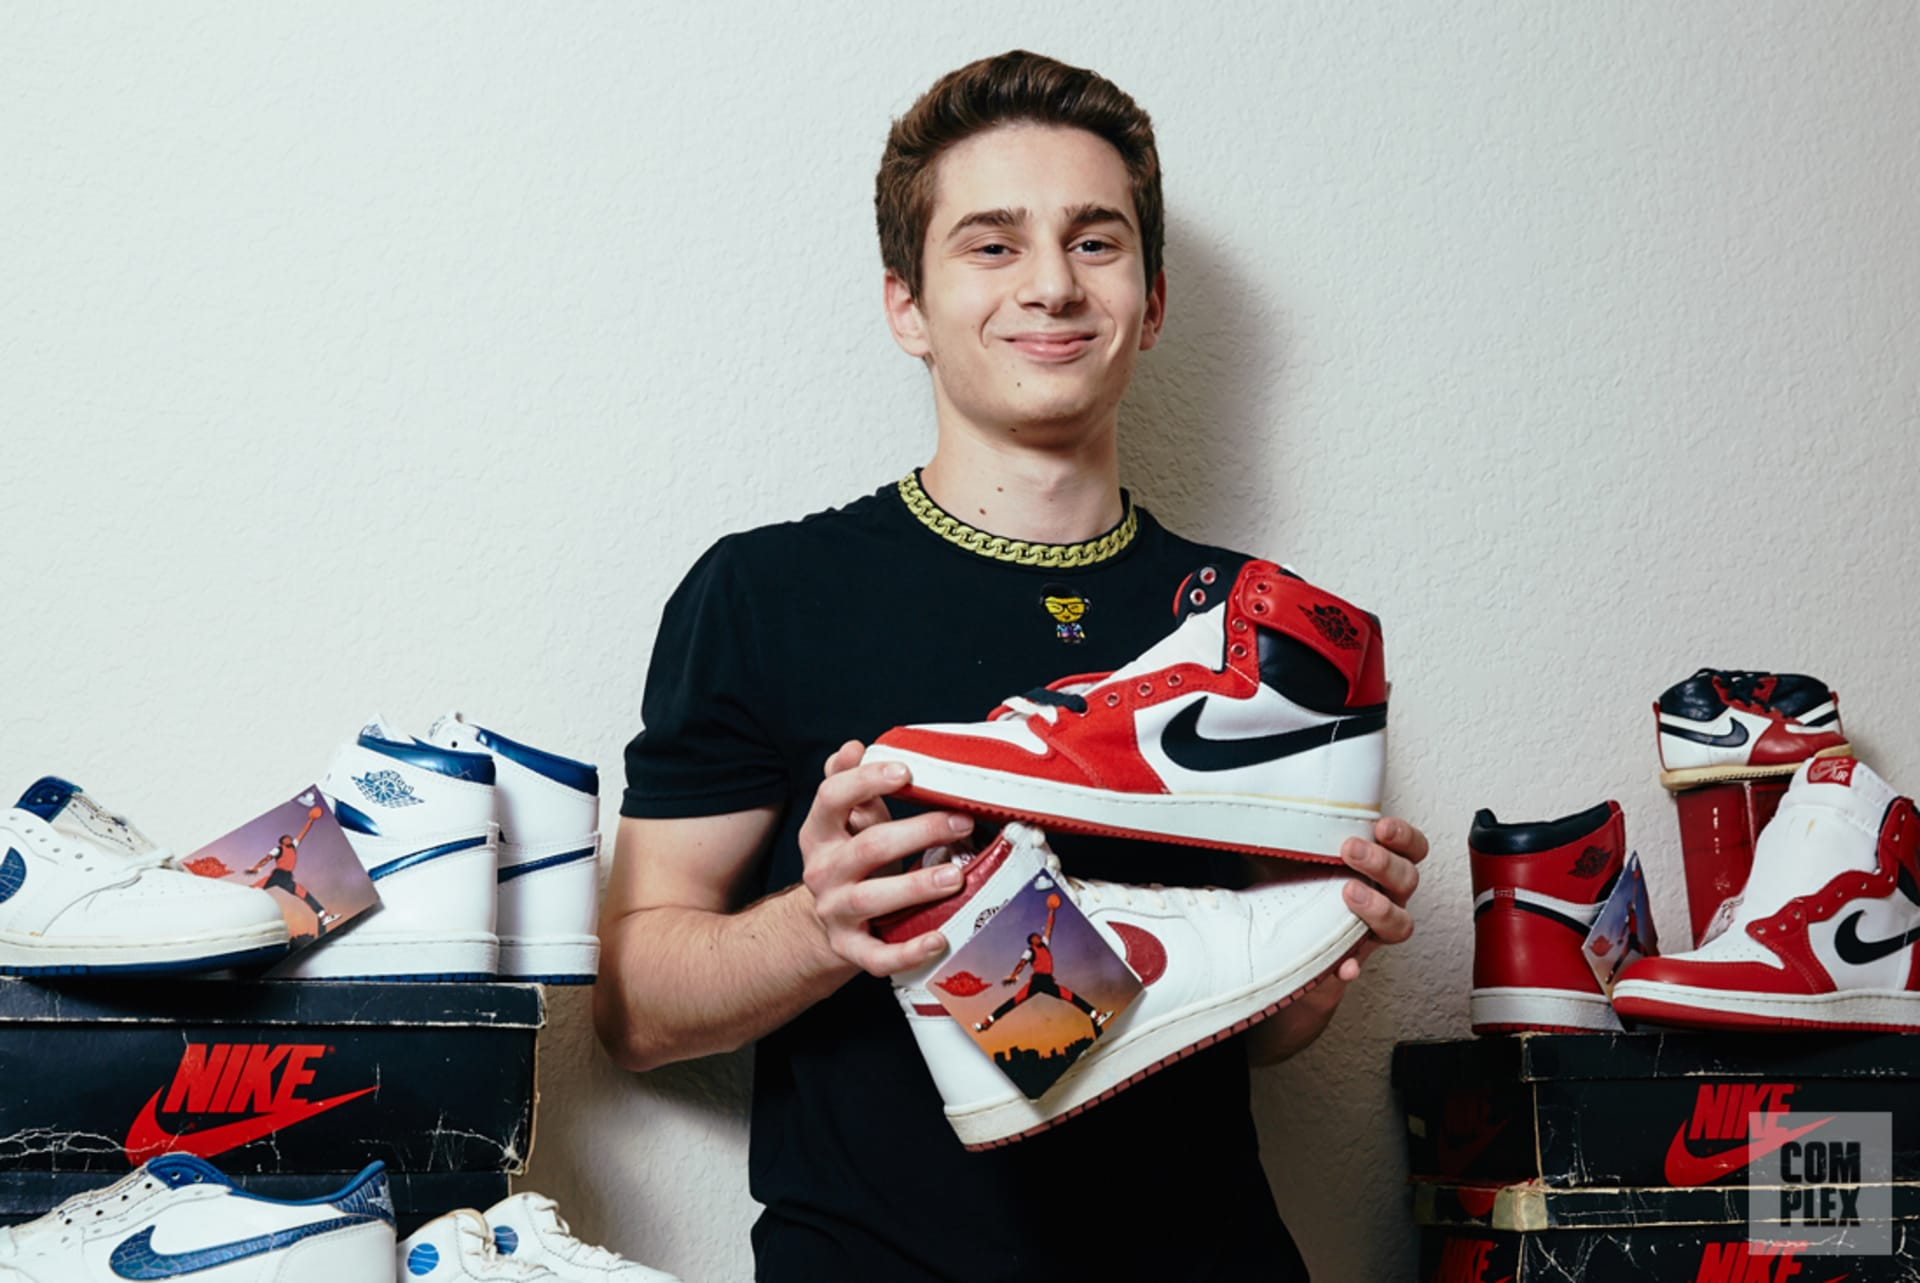 564ee12d2b0 Meet the 17-Year-Old With the Best O.G. Air Jordan 1 Collection ...